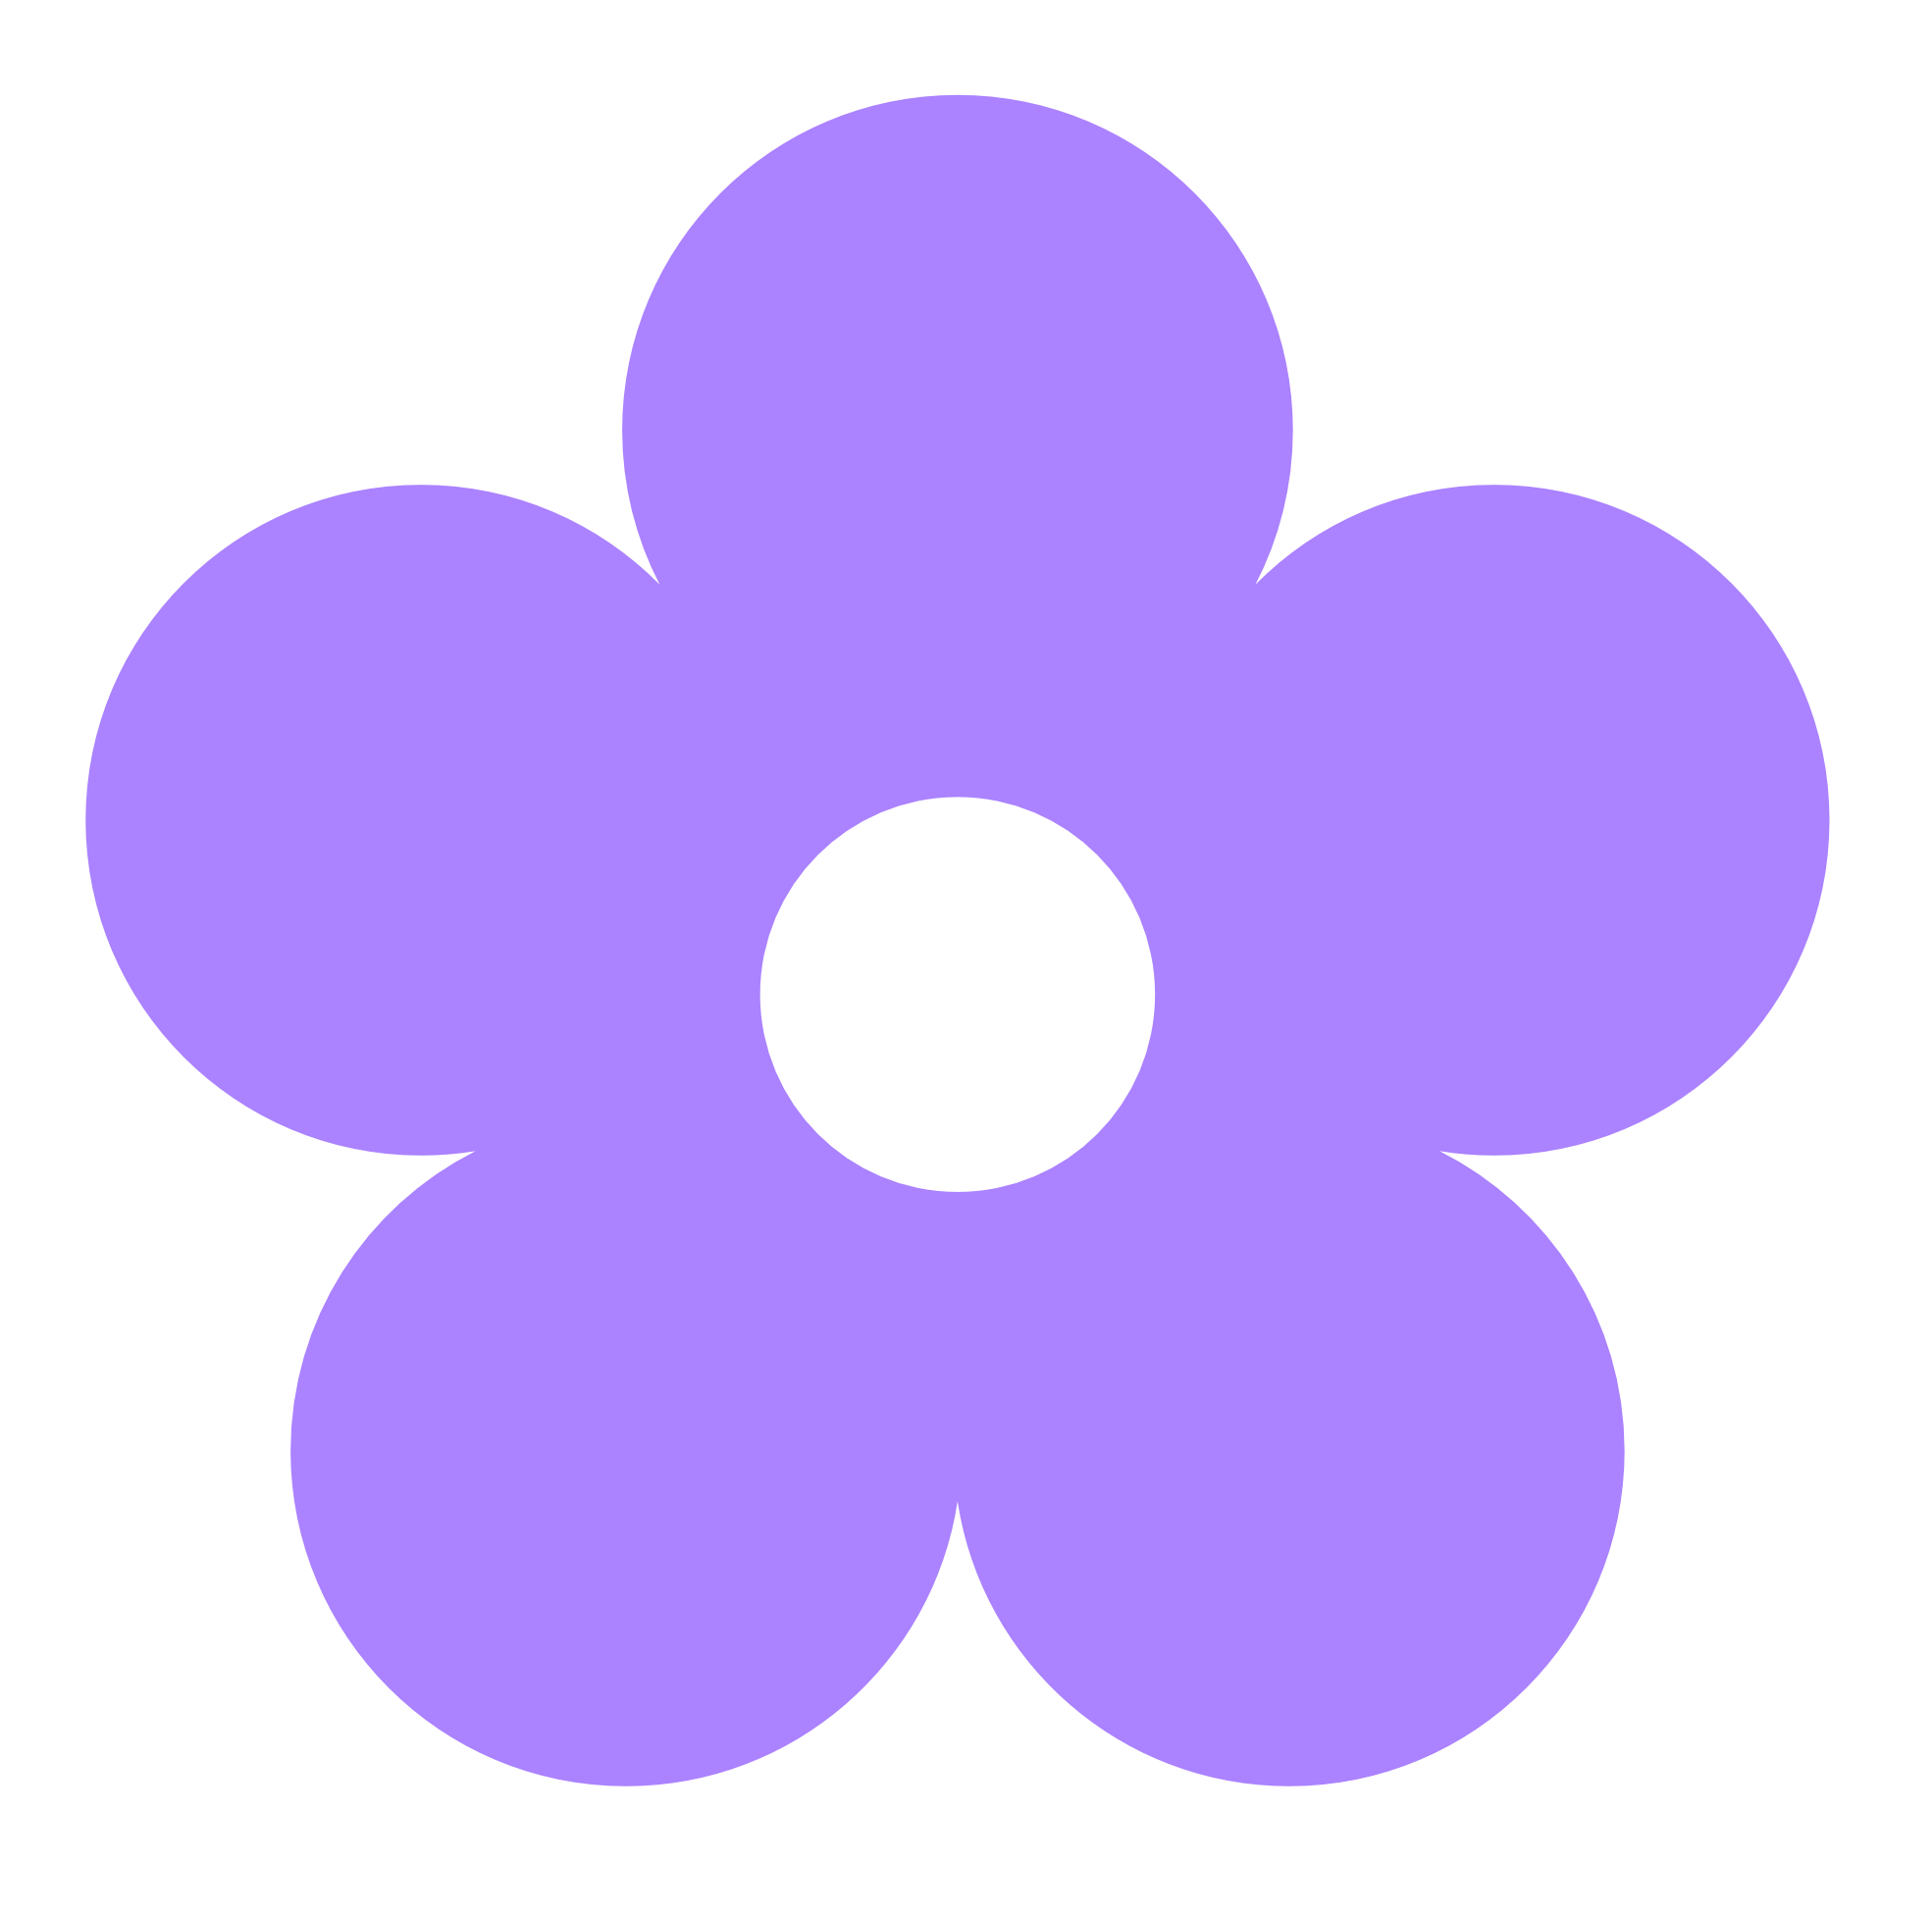 Flower power clipart at getdrawings free for personal use 1969x1952 purple corner flower clip art clipart panda mightylinksfo